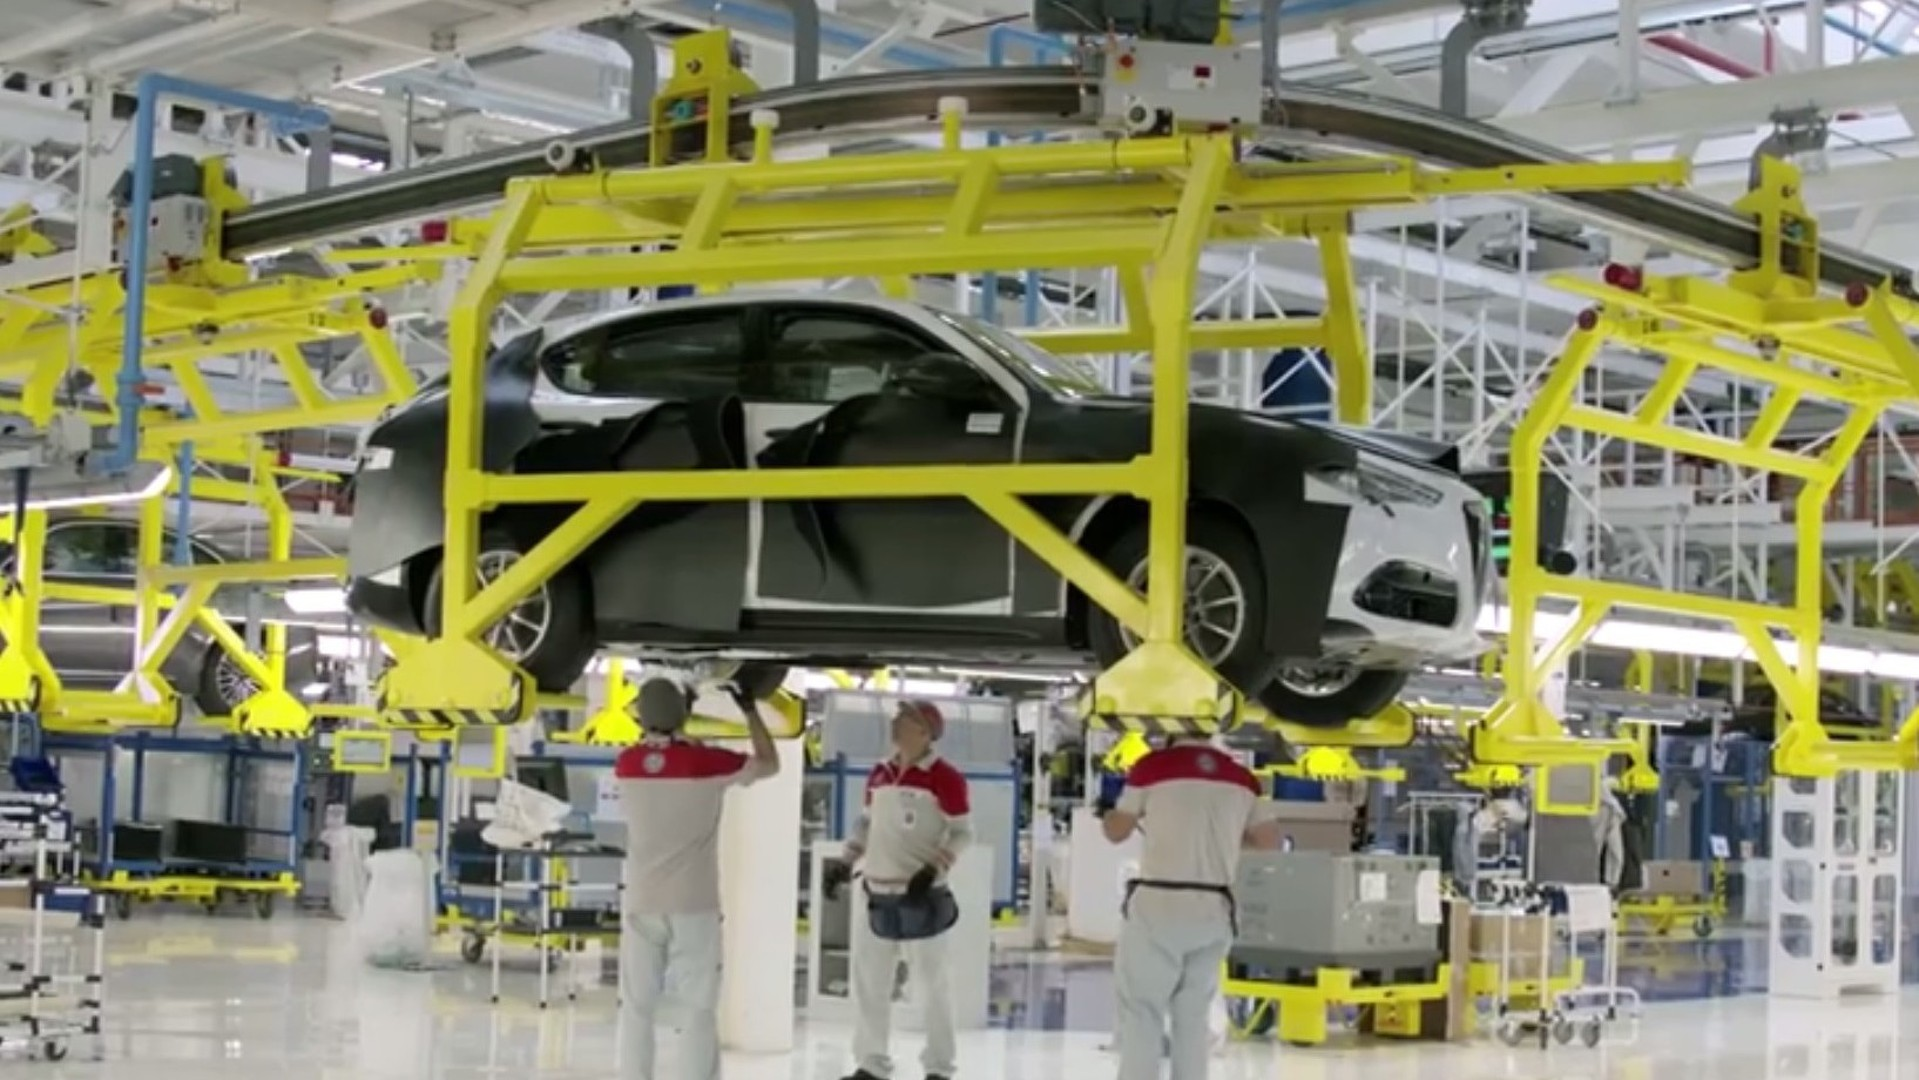 Alfa Romeo Stelvio Suv Spotted Partially Uncovered In Factory Video